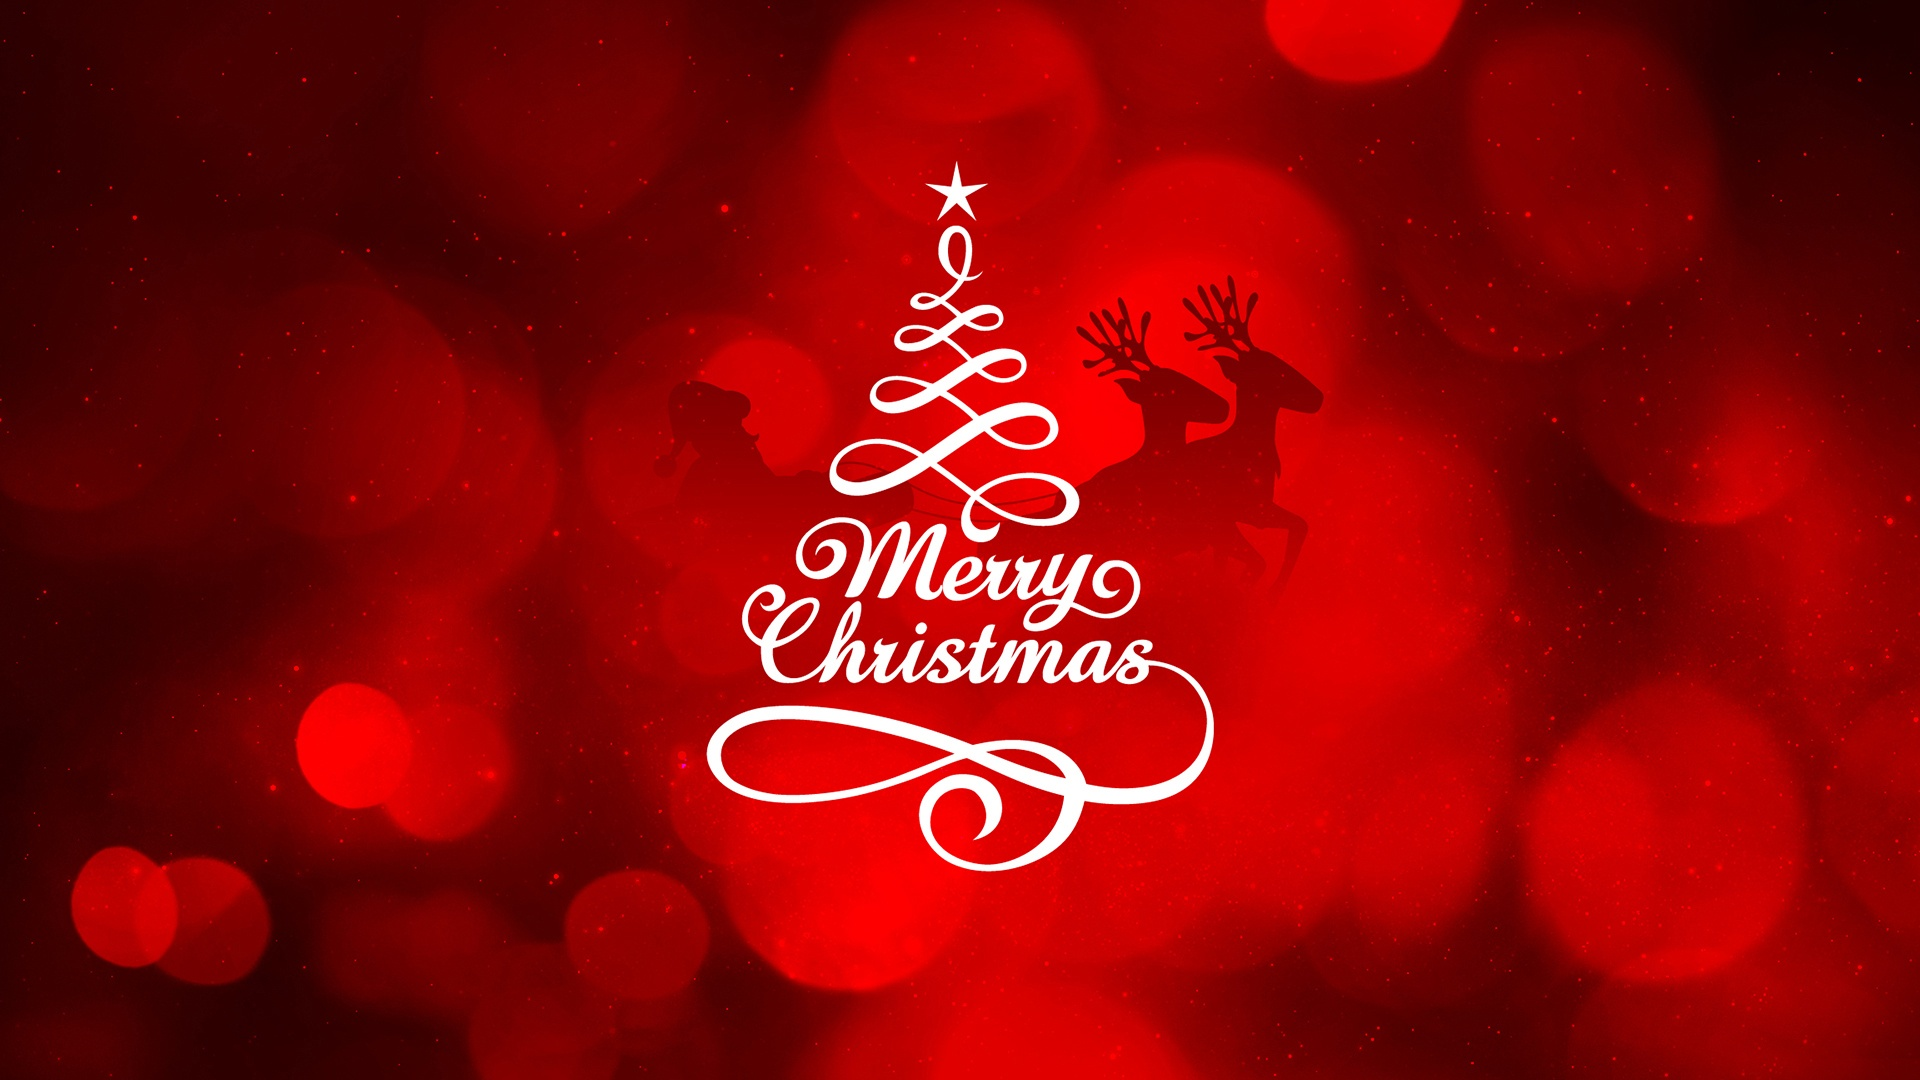 Merry Christmas New Wallpapers in jpg format for free download